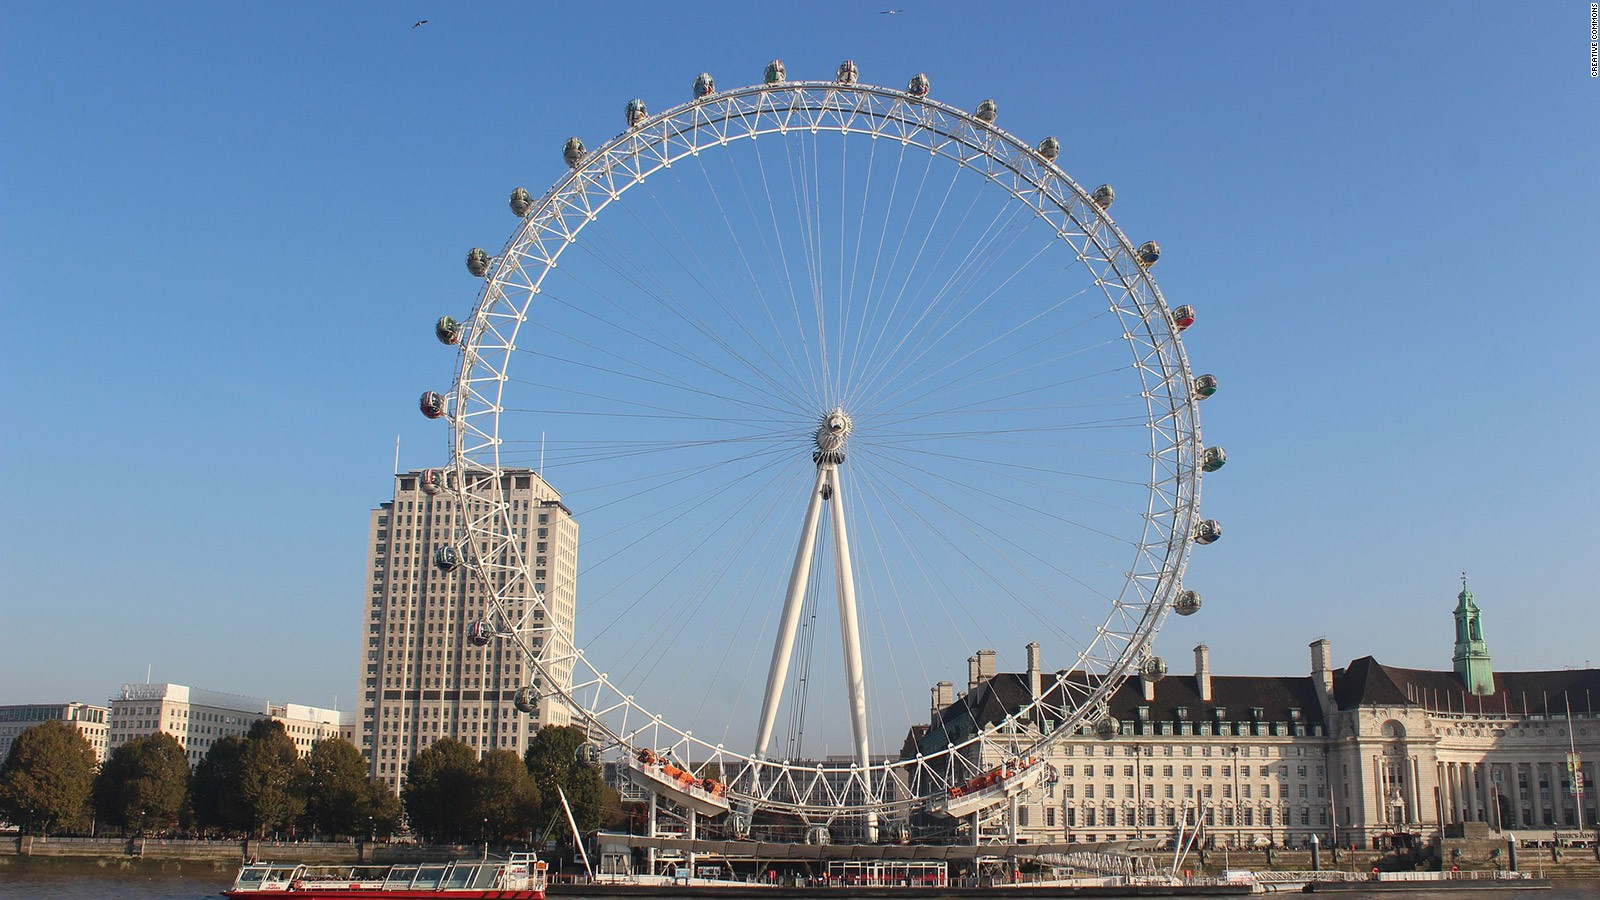 london eye: tips for your visit | cnn travel